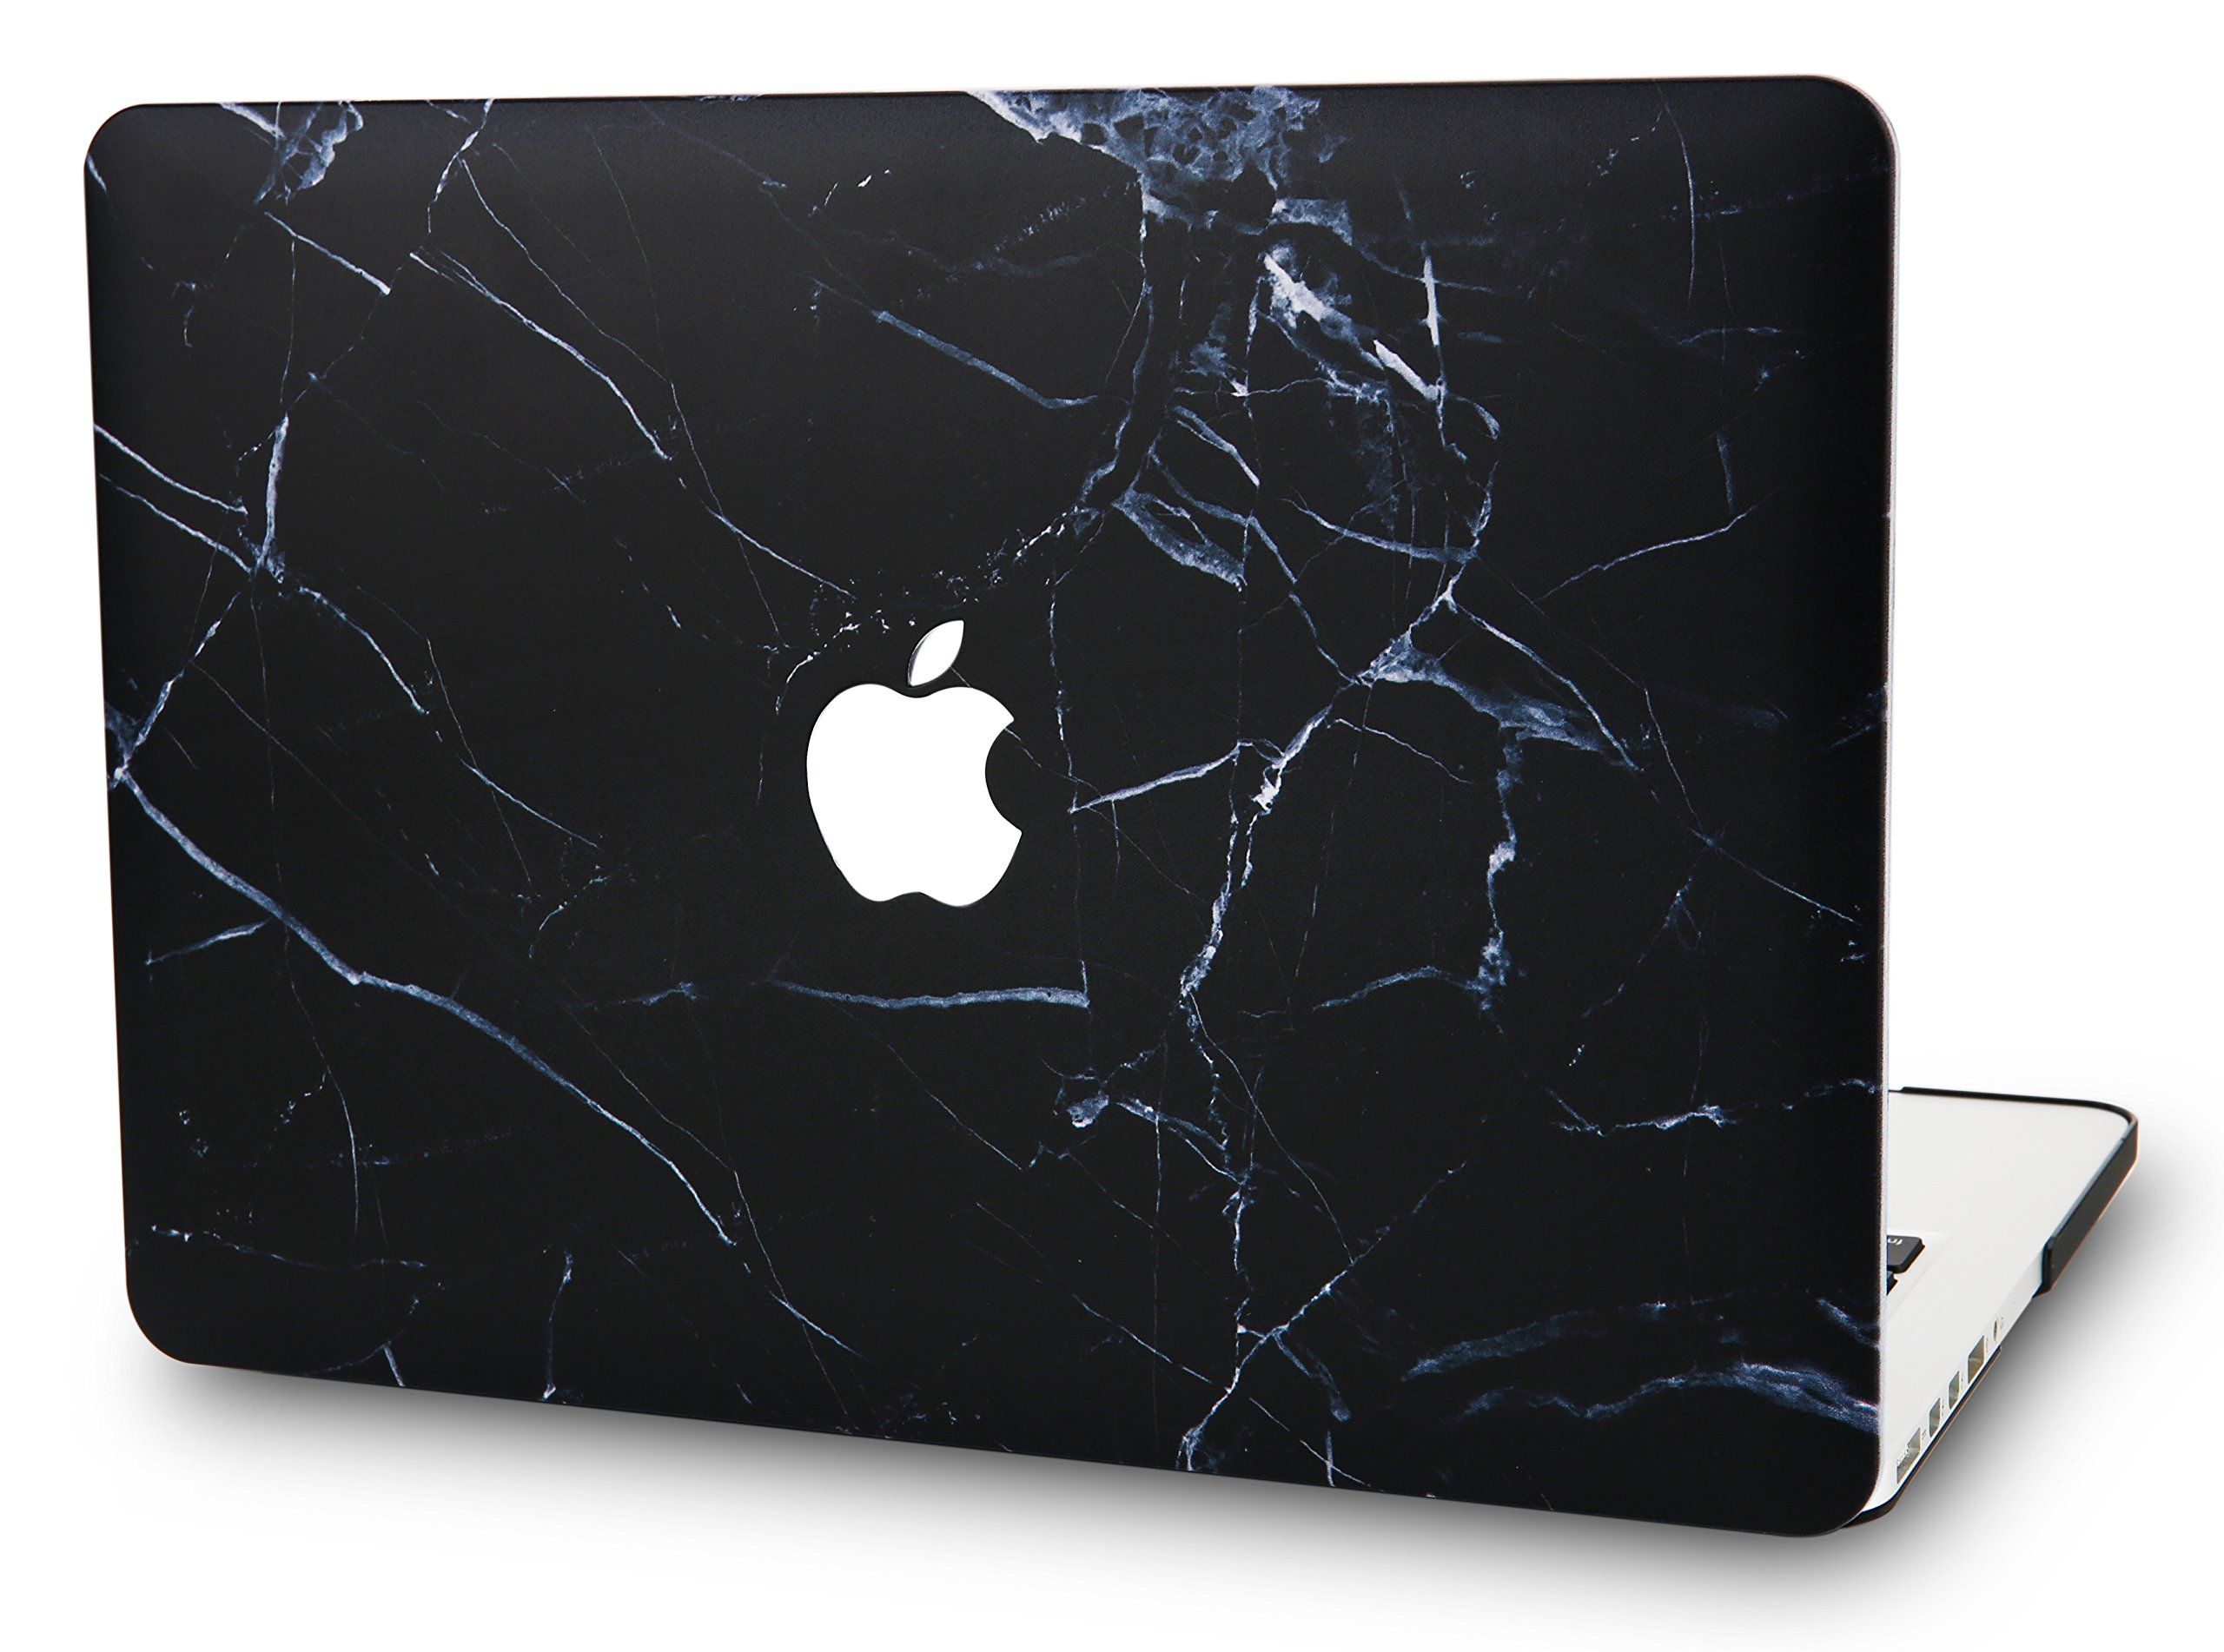 KEC Laptop Case for MacBook Air 13'' Plastic Case Hard Shell Cover A1466 / A1369 (Black Marble)